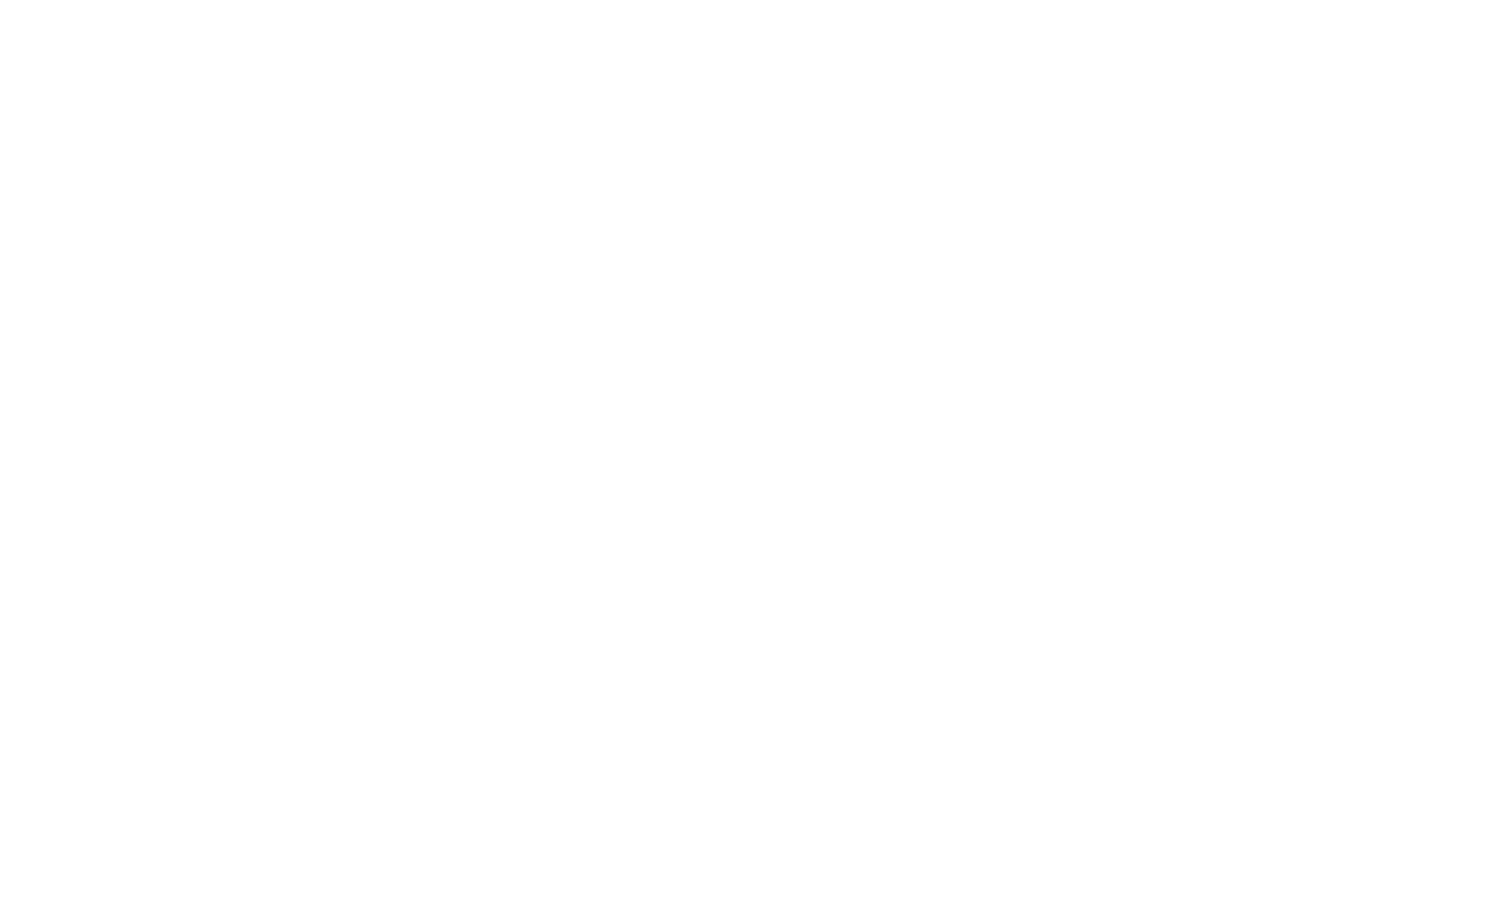 The West Side Sports Bar & Grill